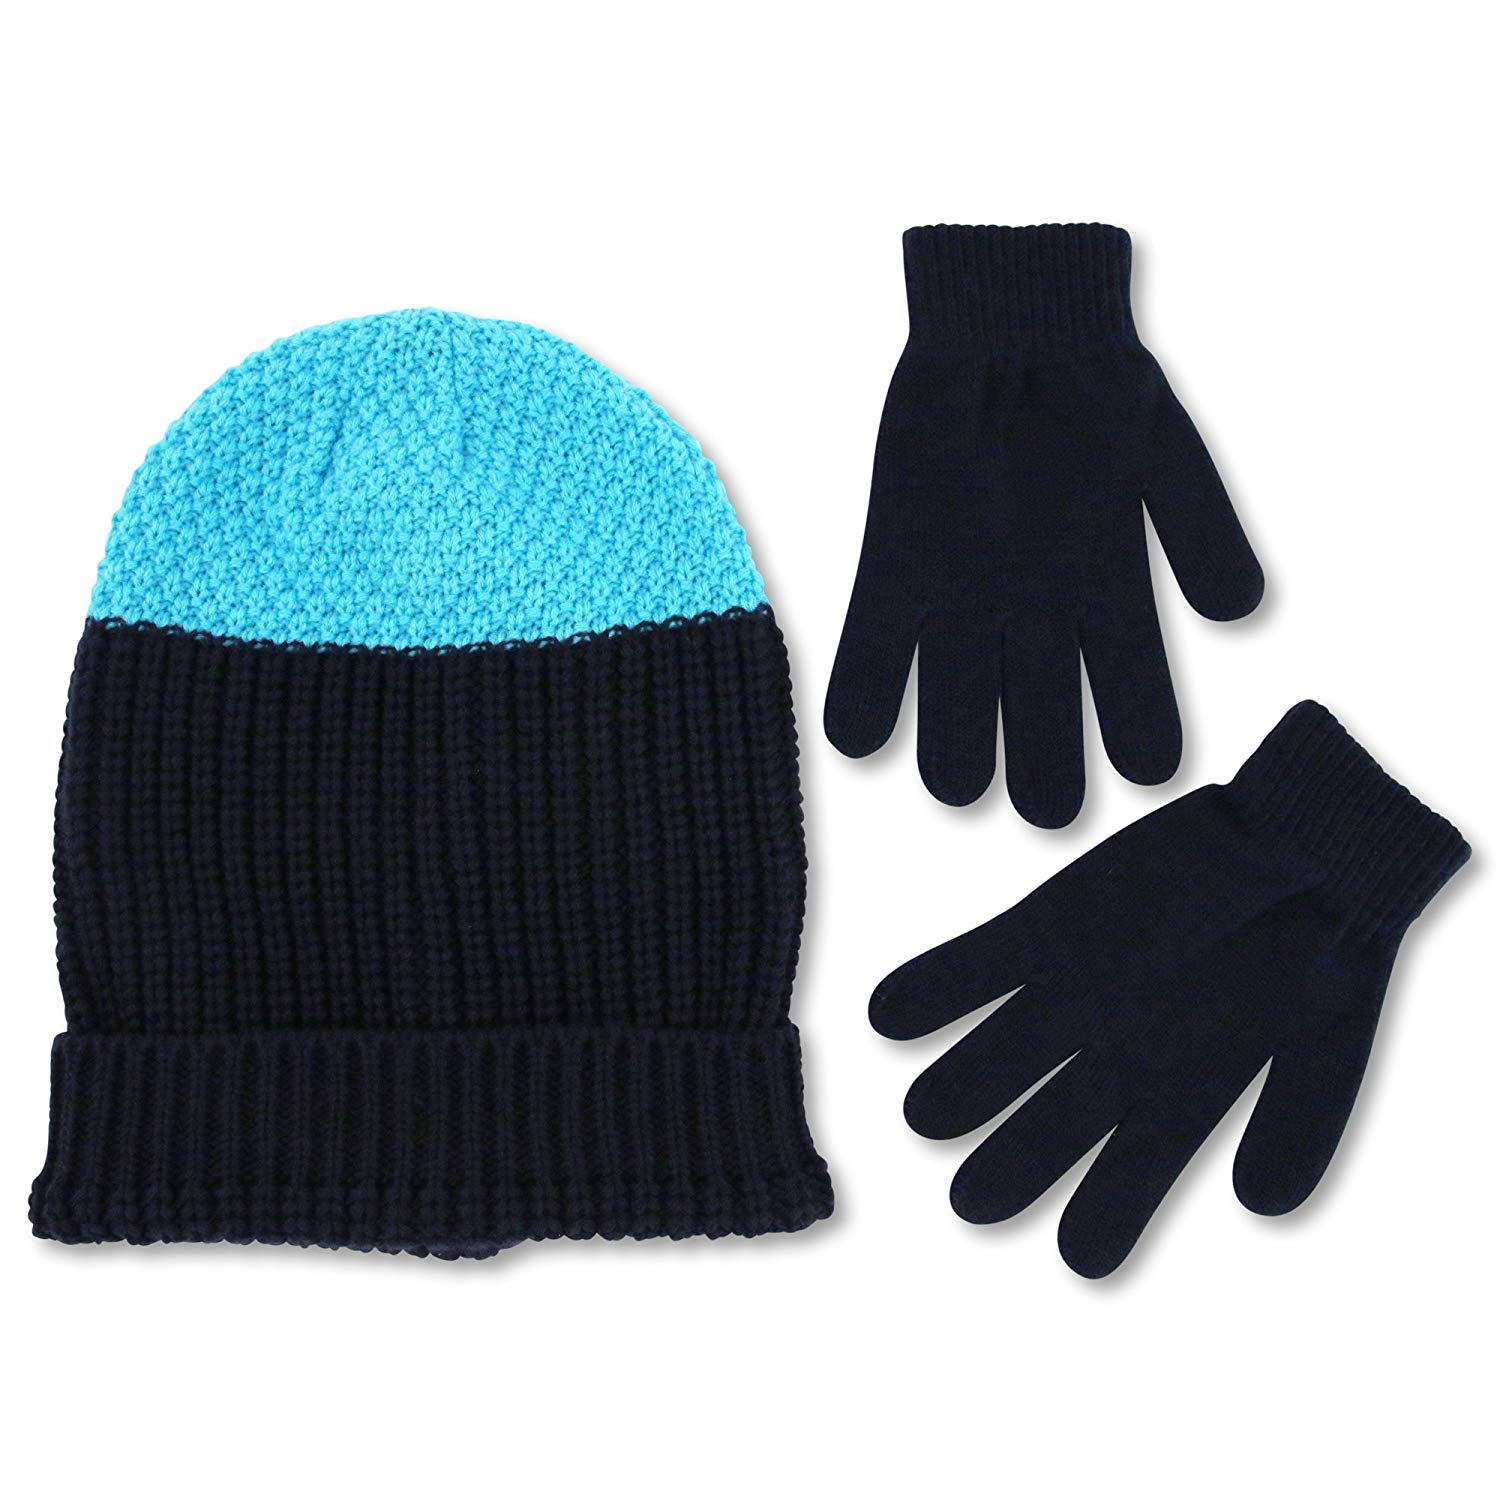 14f854b7419 Get Quotations · ABG Accessories Big Boys  Slouchy Knit Beanie with Magic  Glove Set